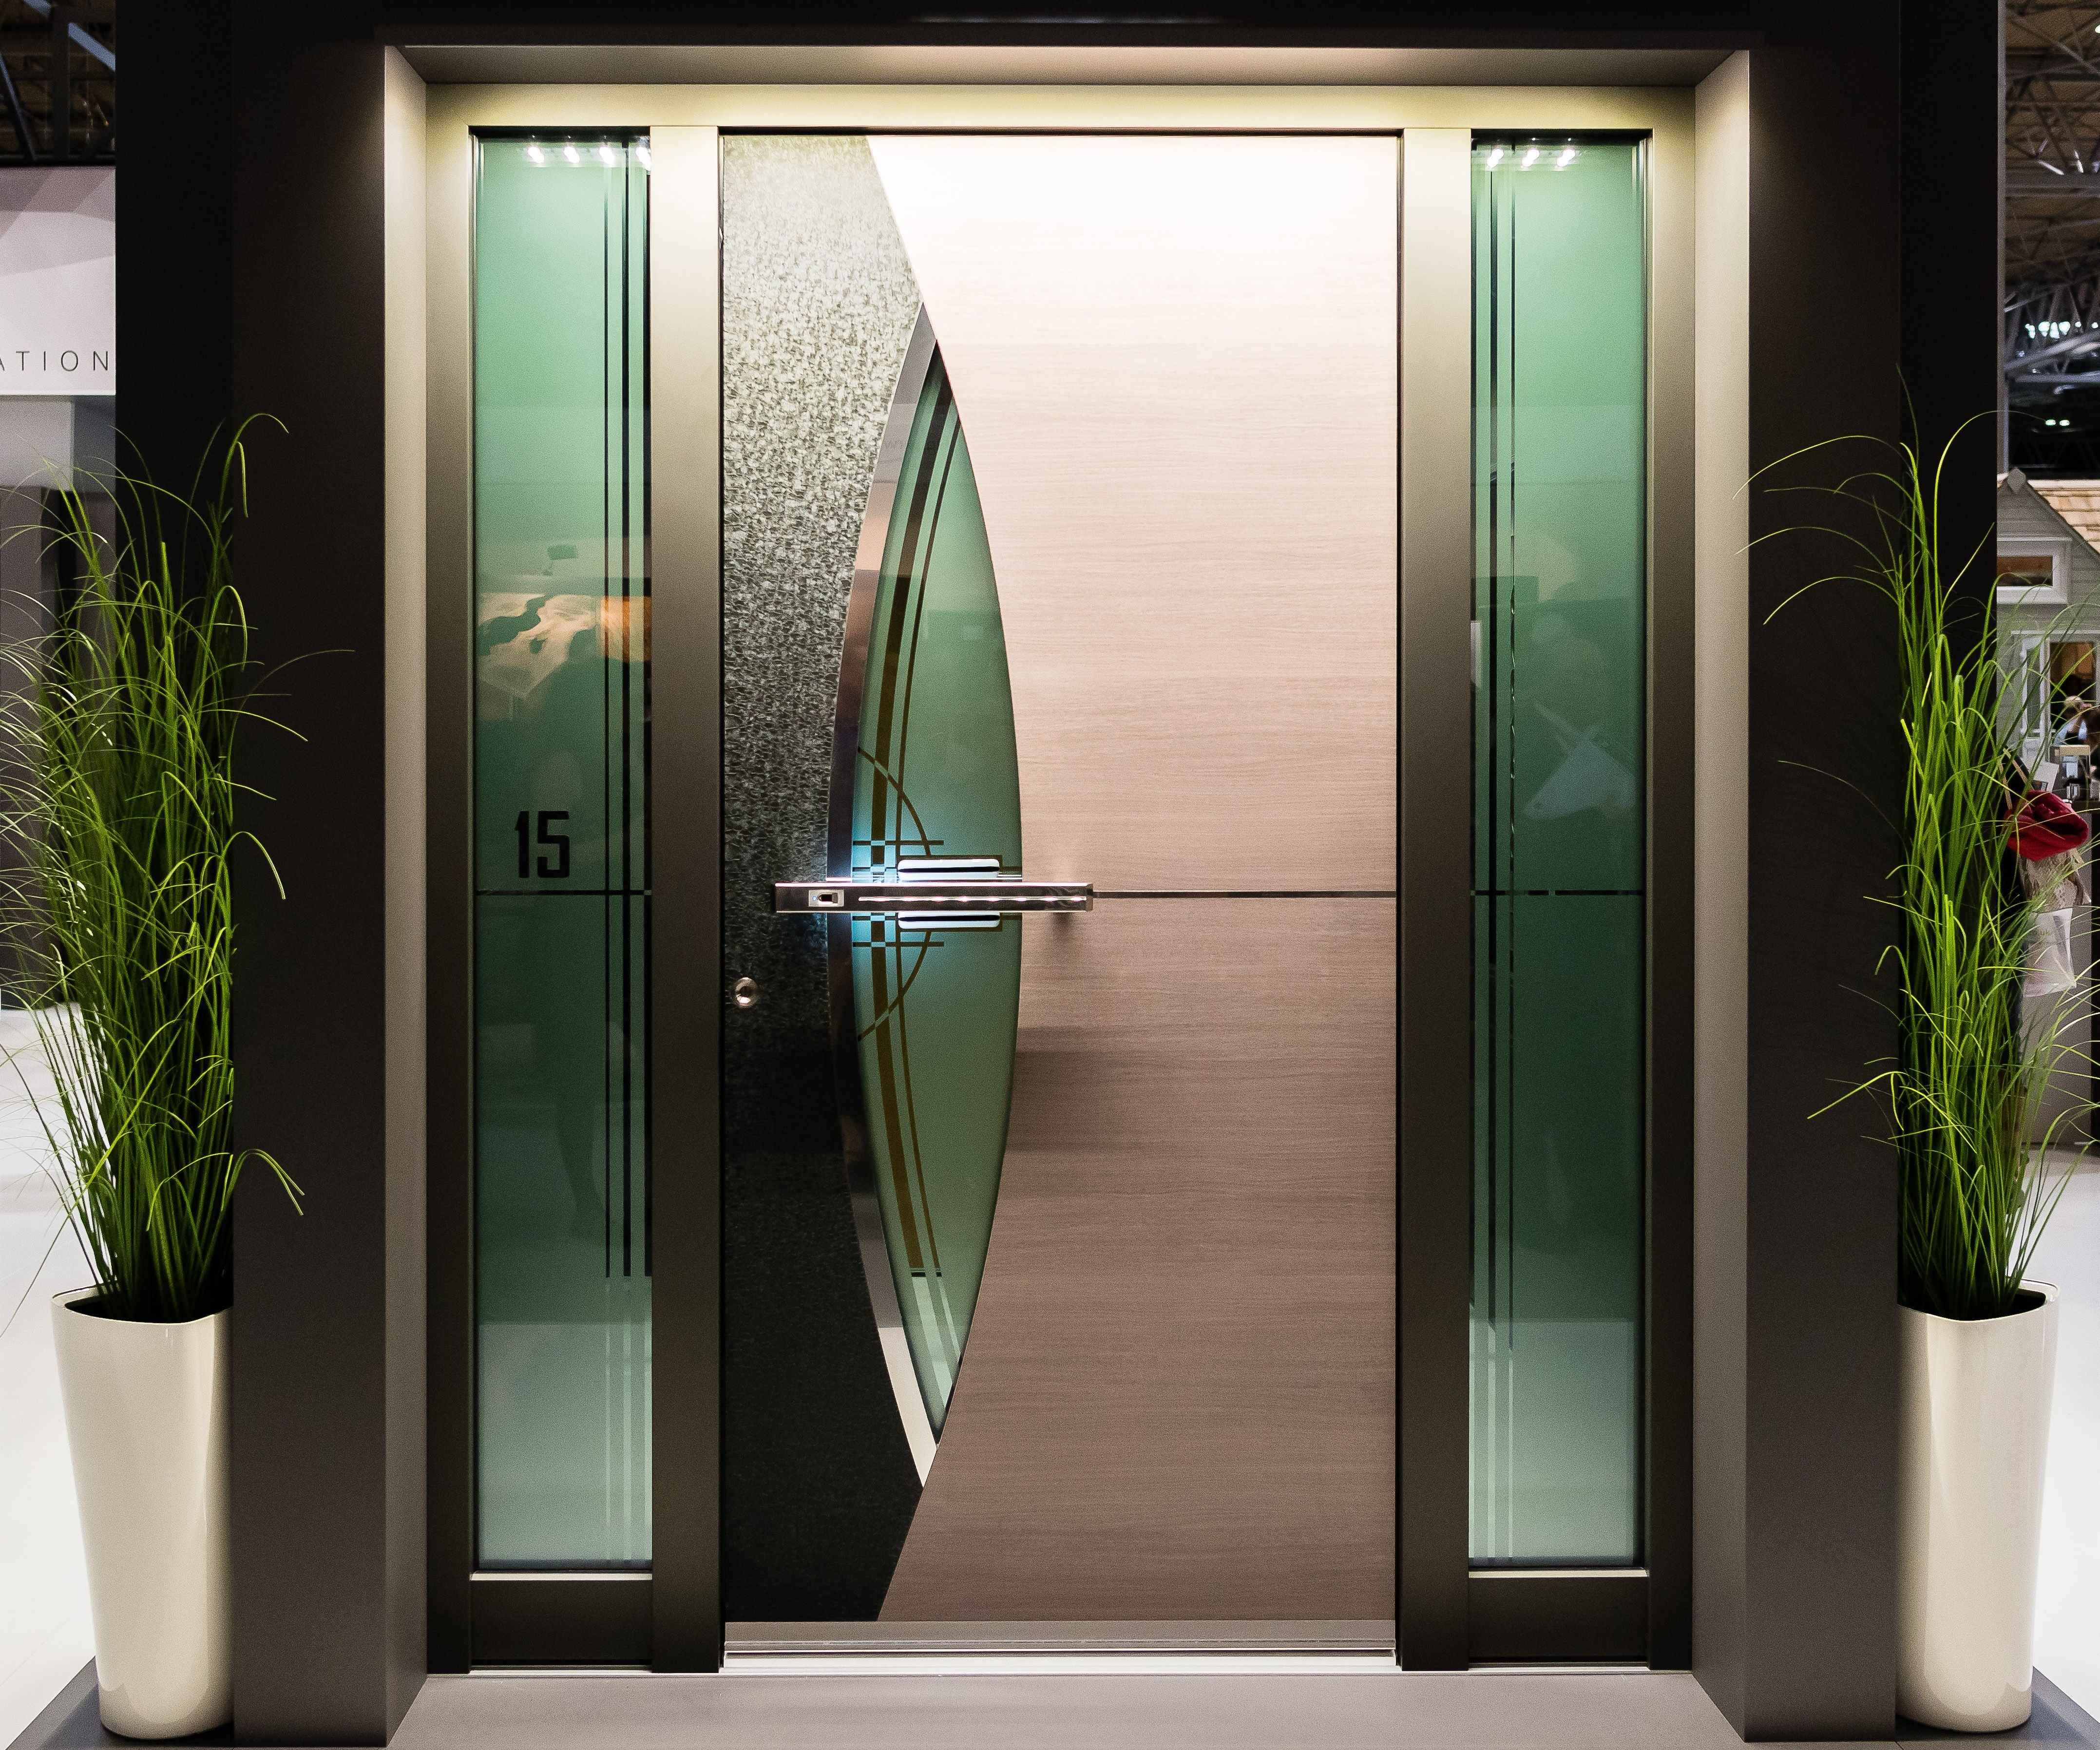 Grand Designs Live Birmingham Hosted A Range Of Door Companies To Help You Find A Solution Perfect For Your Home Grand Designs Live Grand Designs Glass Panels